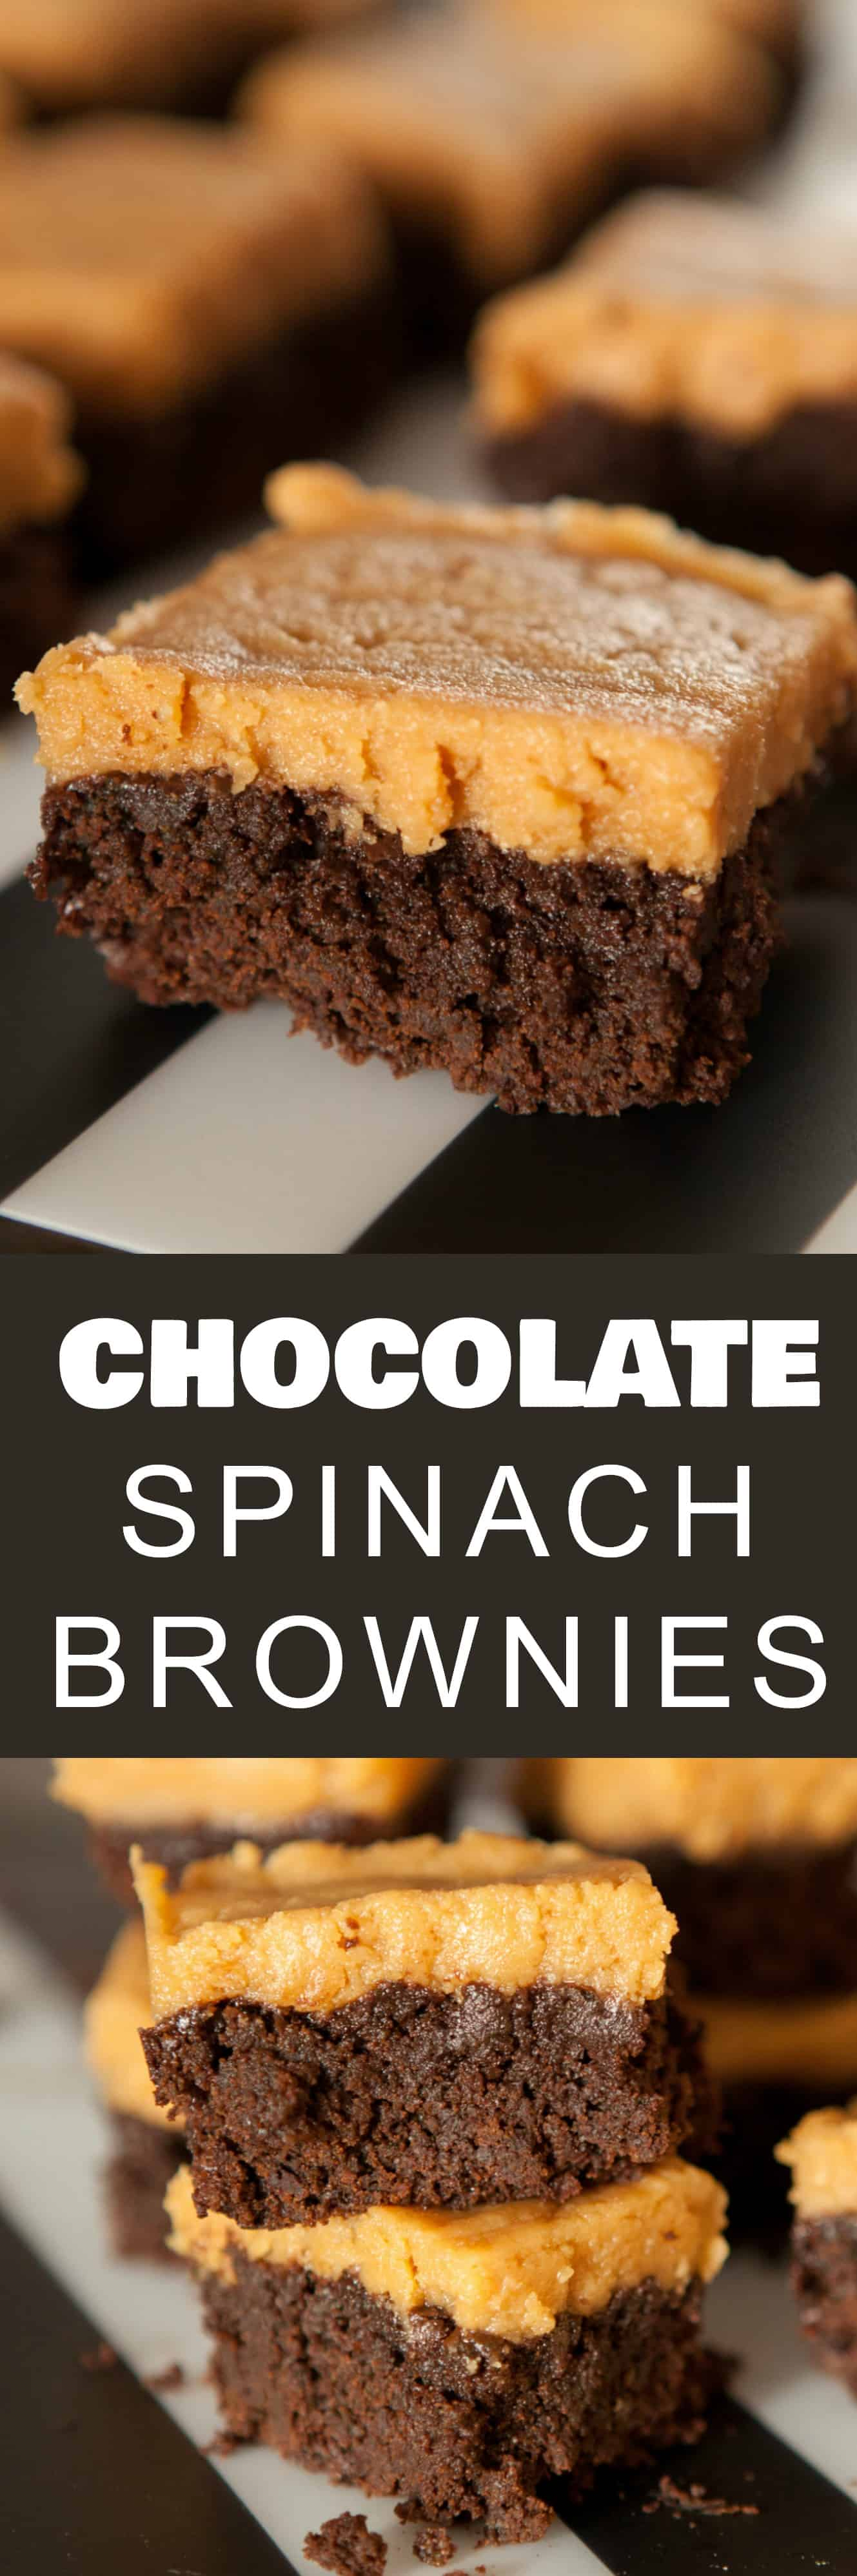 Chocolate SPINACH BROWNIES with Peanut Butter Frosting recipe.  This is a EASY way to get kids or adults to eat their vegetables.  You won't believe how delicious these brownies are!  They're also made with the best peanut butter frosting recipe ever!